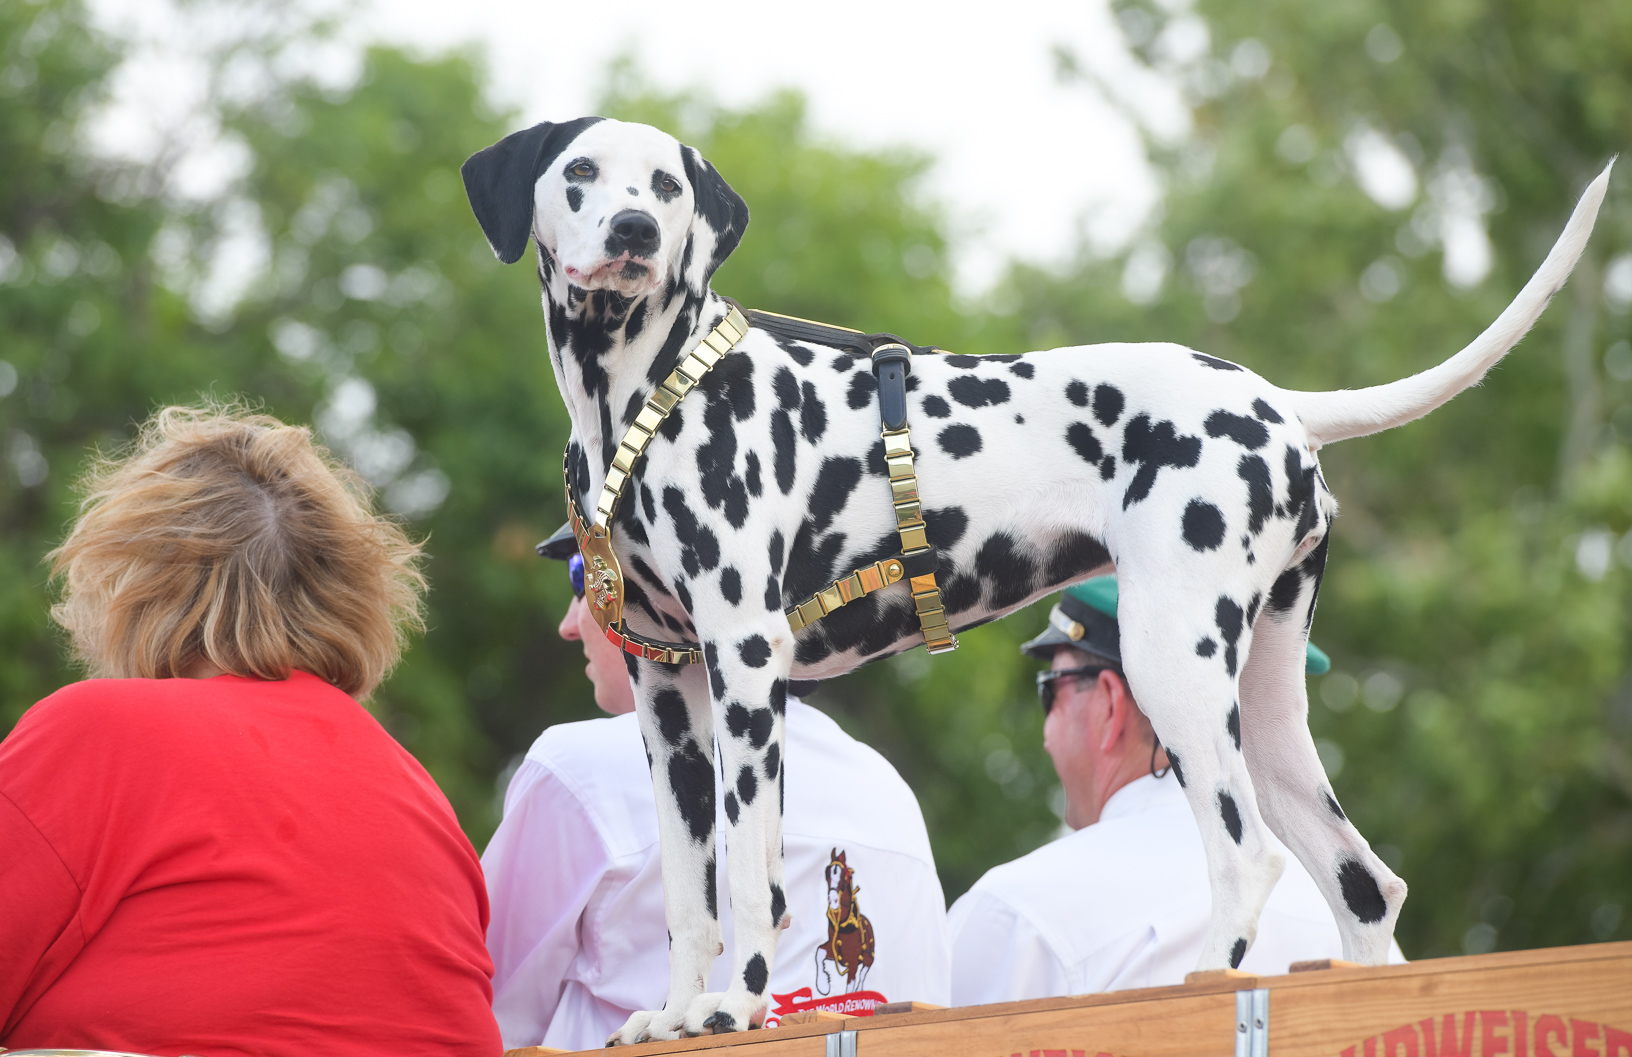 August the Dalmatian watches the crowd from atop of the Budweiser wagon during a parade through the Iowa State Fairgrounds. Photo credit: Joseph L. Murphy/Iowa Soybean Association